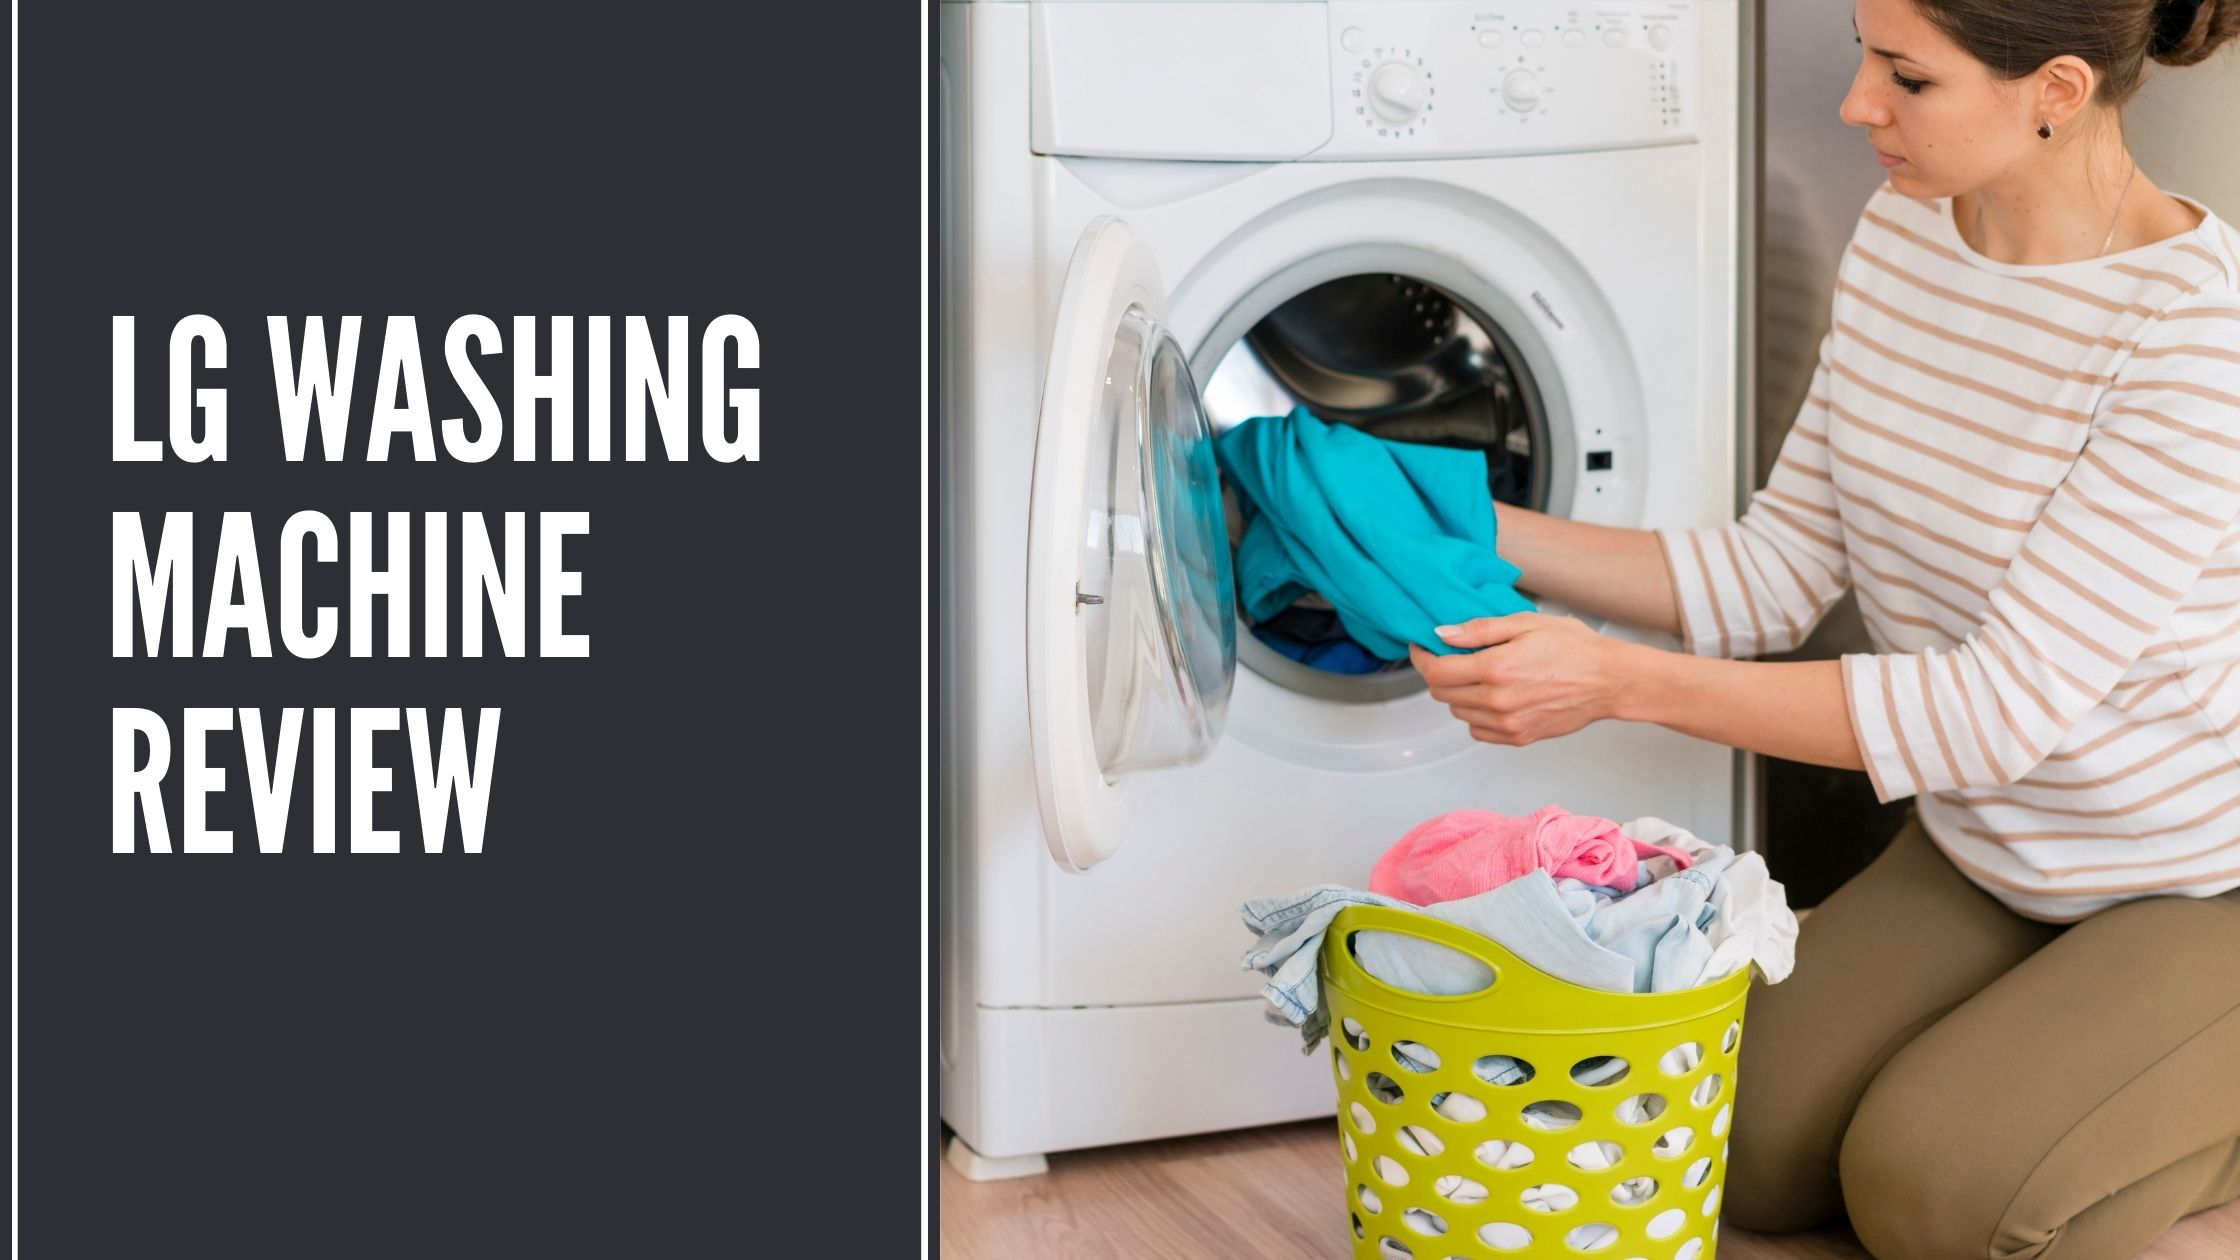 LG Washing Machine Review 2021